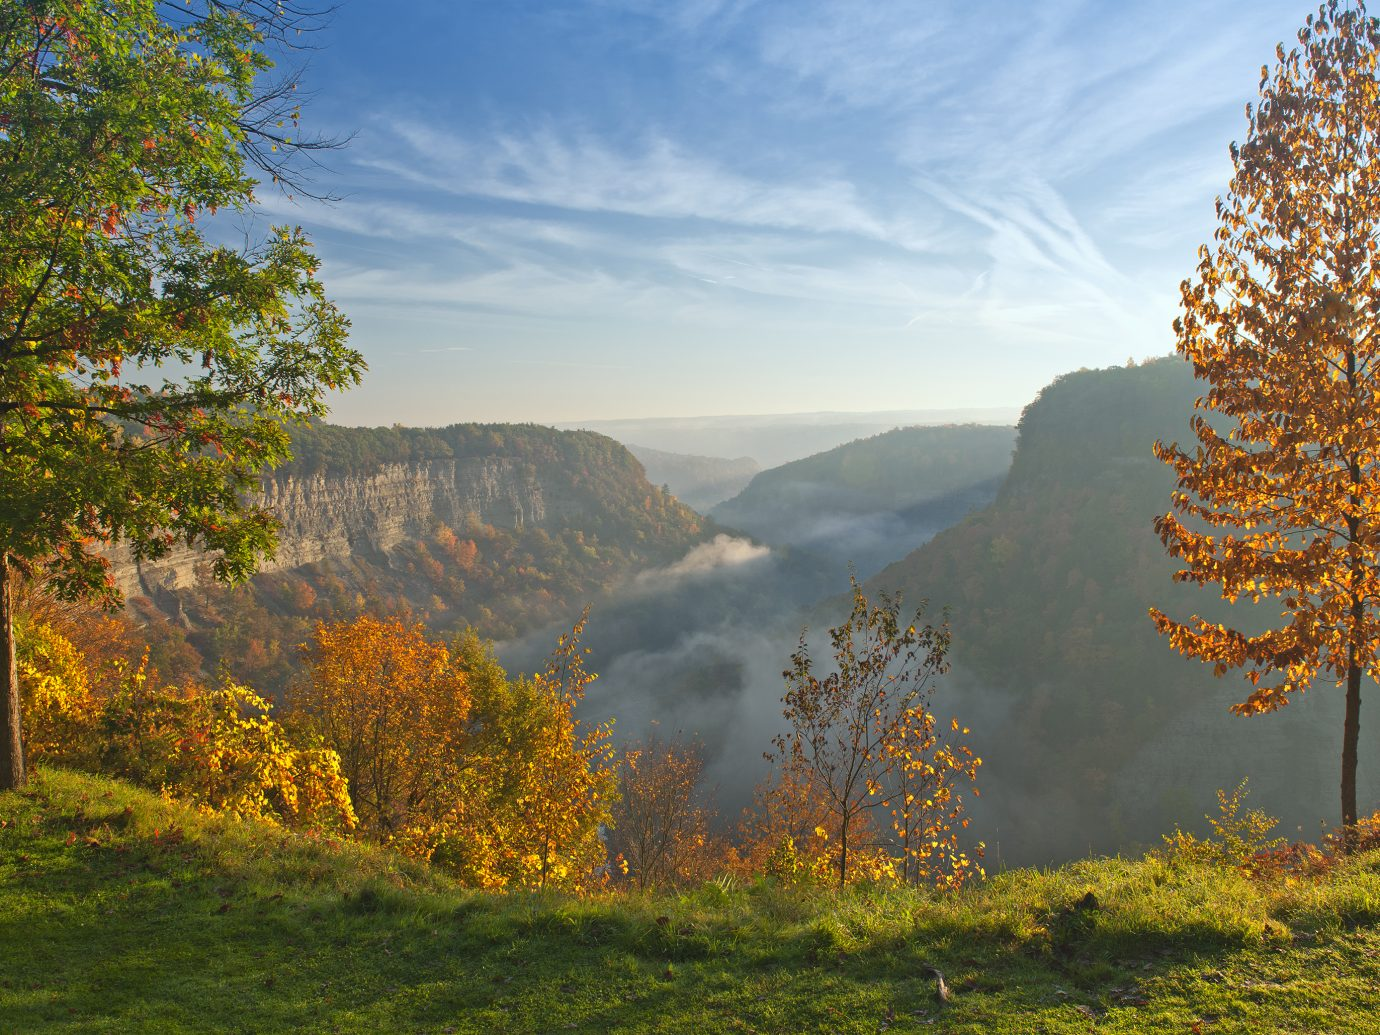 Great Bend Overlook At Letchworth State Park In New York Just After Sunrise.